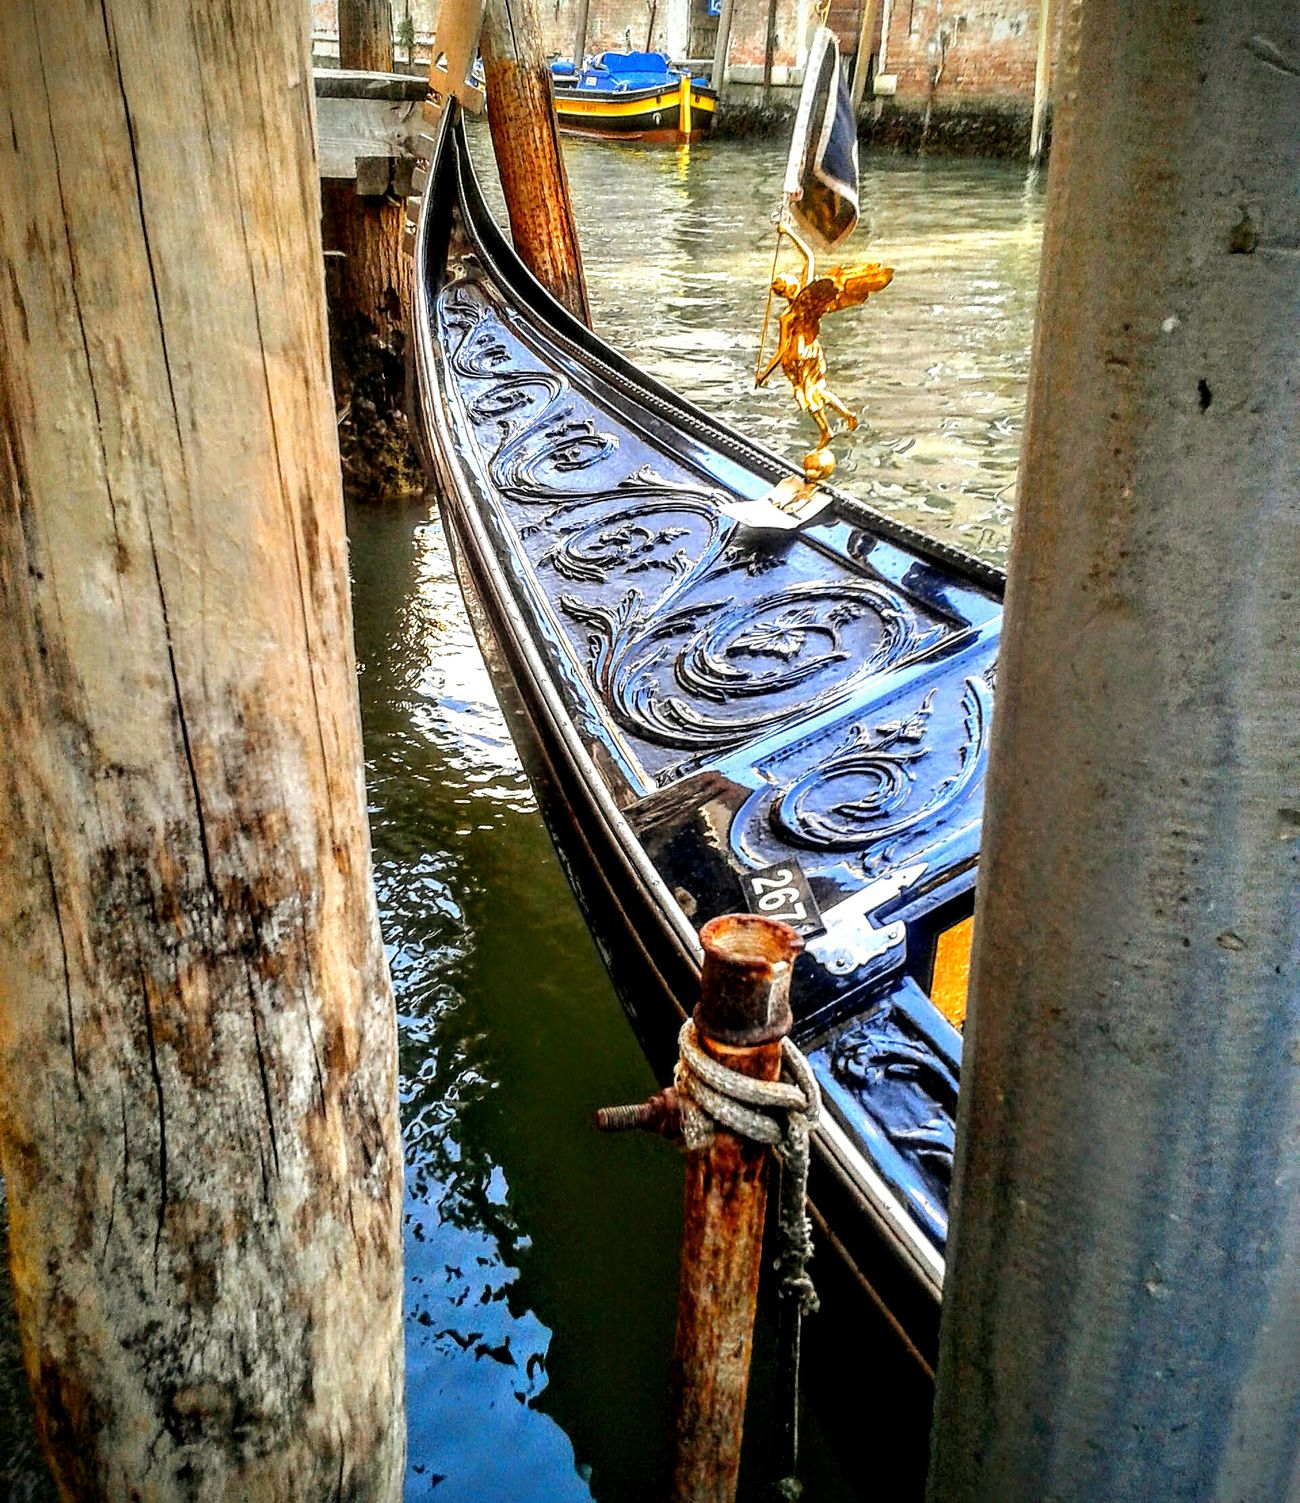 Transportation Gondola - Traditional Boat Taxi Boat Venezia Italy Venezia Canals Veneziagram Exceptionalphotographs Exceptional Photographs EyeEm Gallery The Great Outdoors - 2017 EyeEm Awards The Photojournalist - 2017 EyeEm Awards History Through The Lens  Excellent Shot